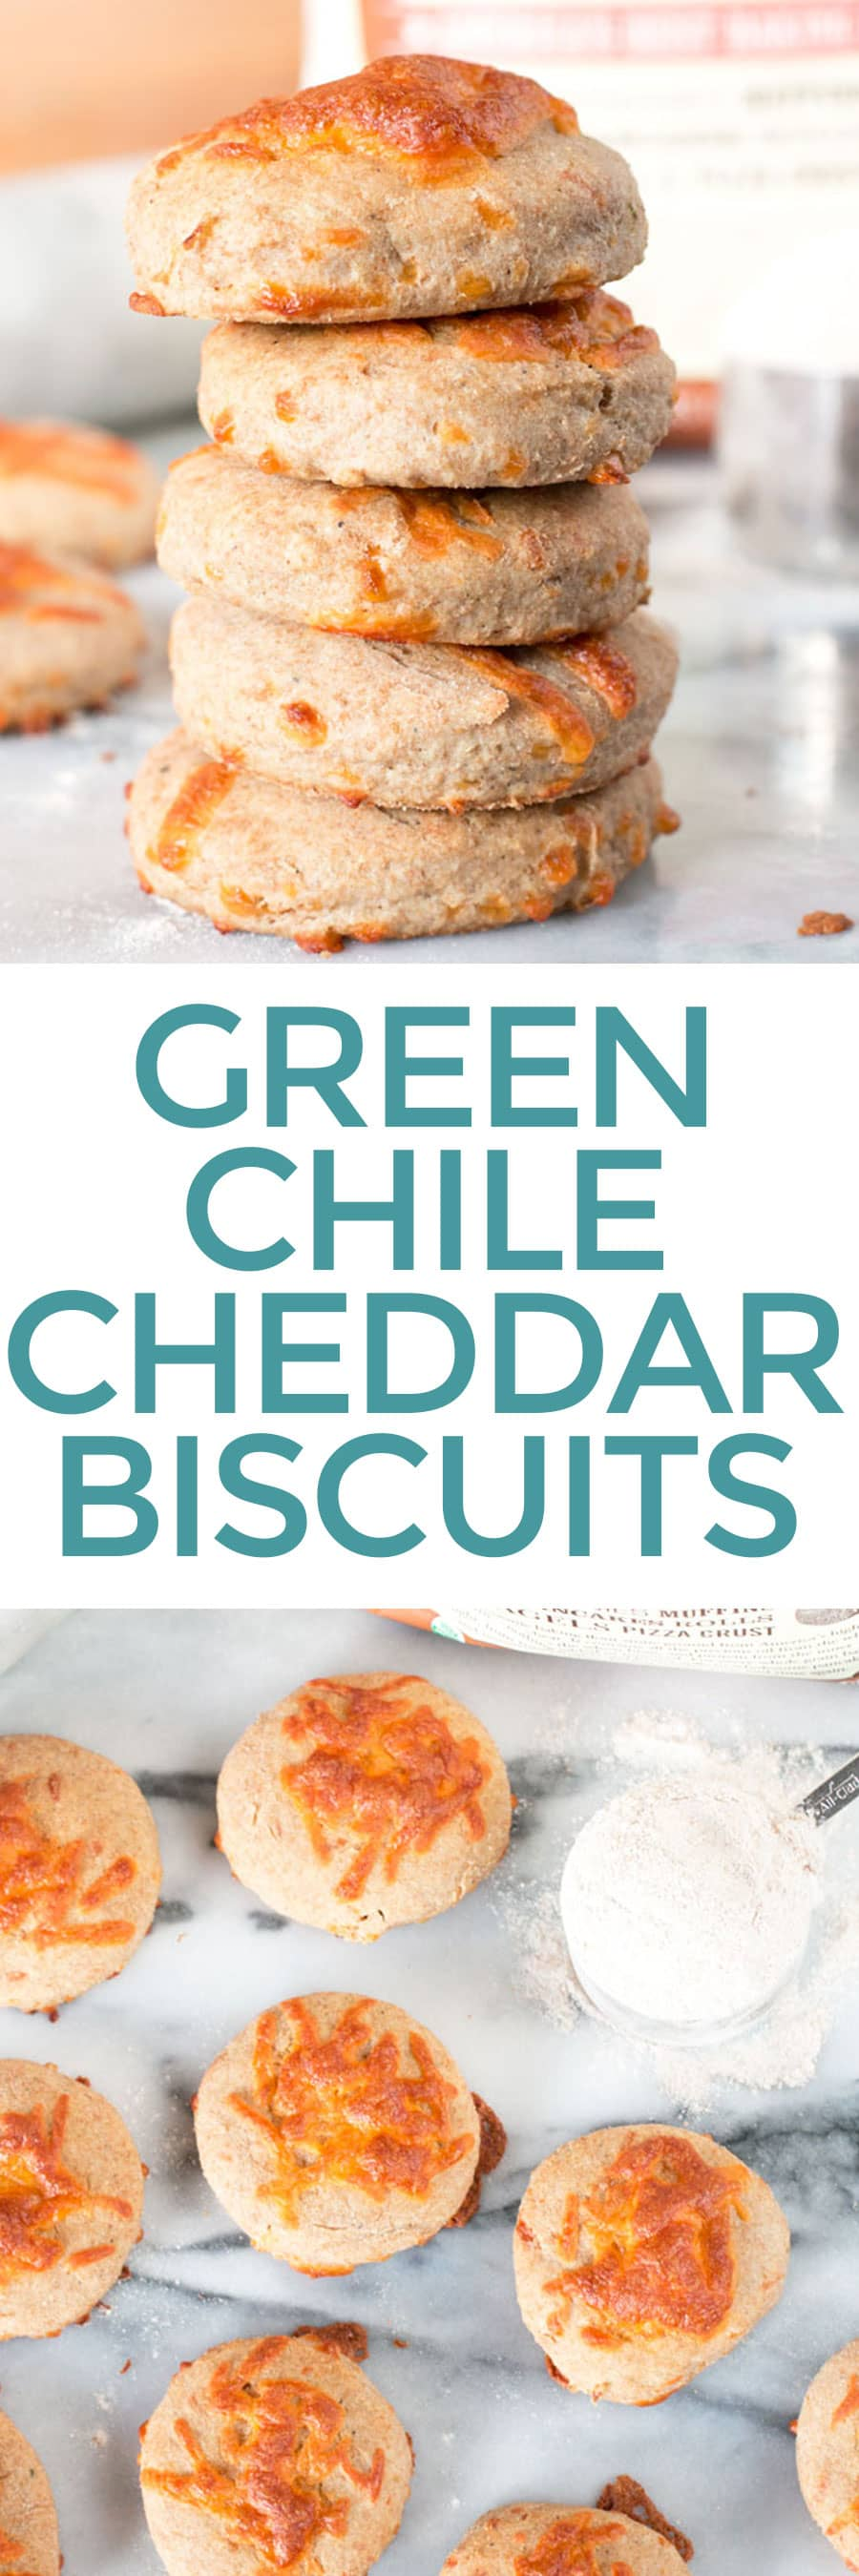 Green Chile Cheddar Whole Wheat Biscuits   cakenknife.com